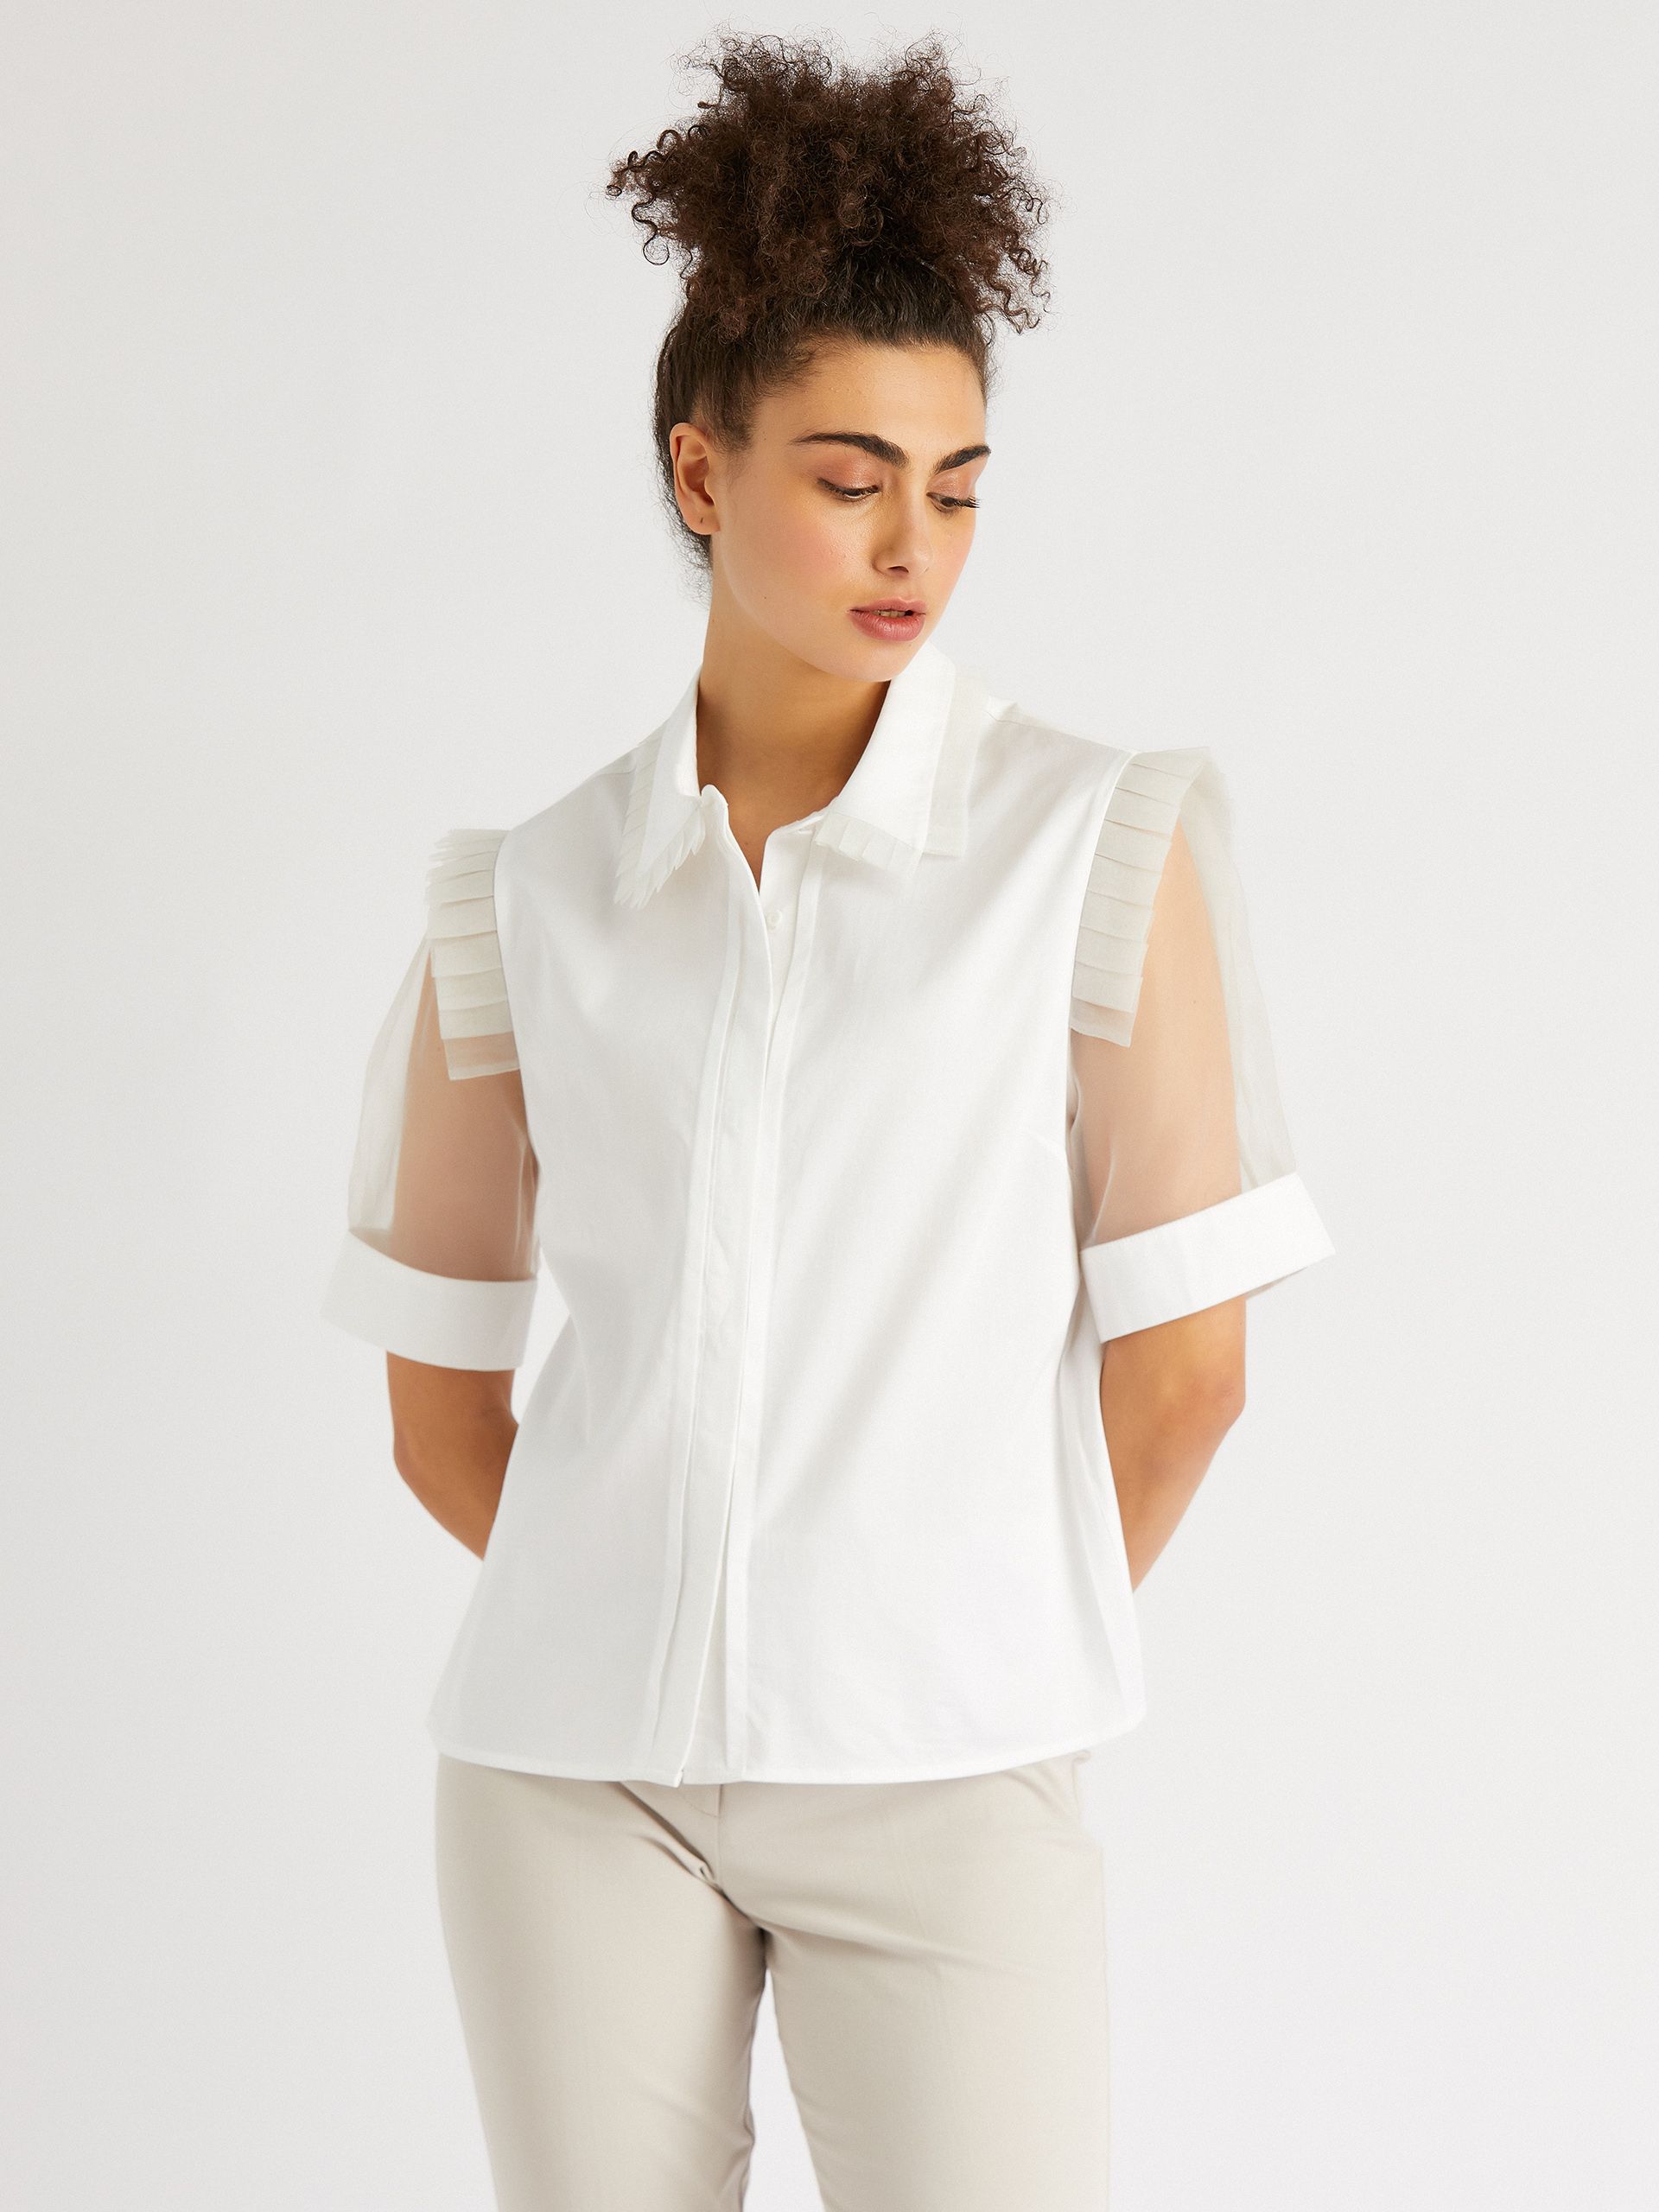 Chiffon Sleeve Shirt With Frilly Details On The Shoulders